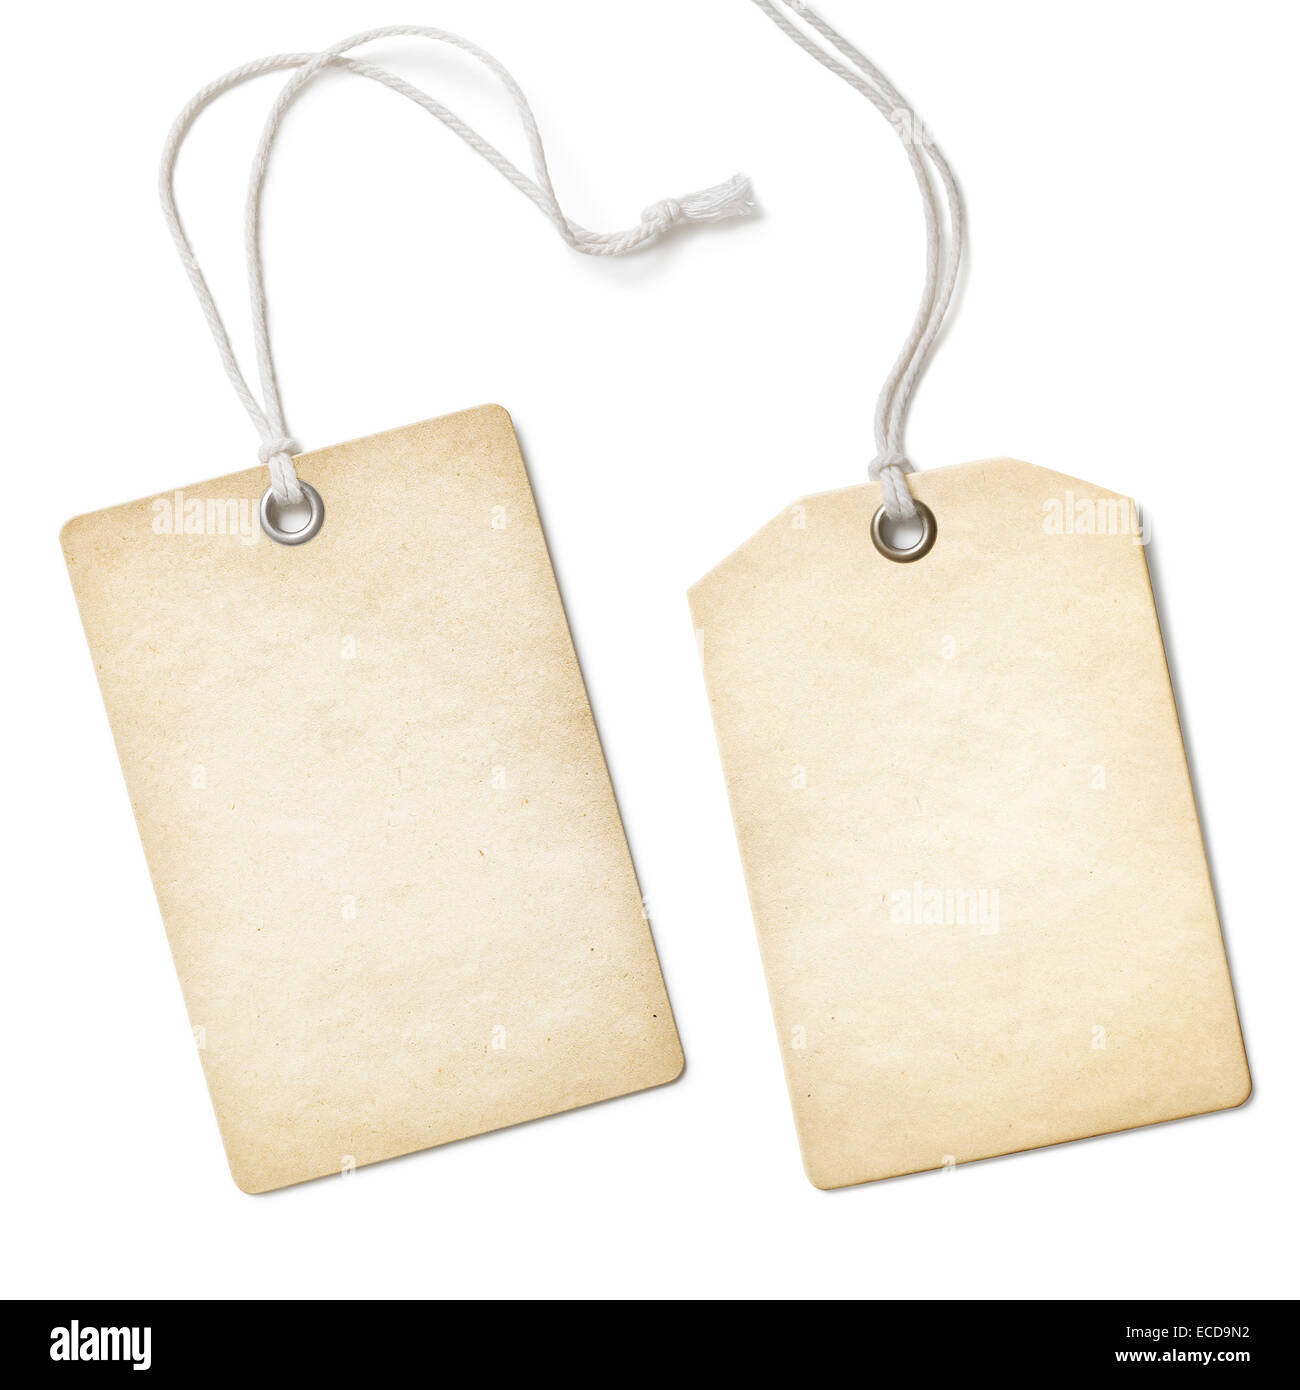 Blank old paper cloth tag or label set isolated on white - Stock Image